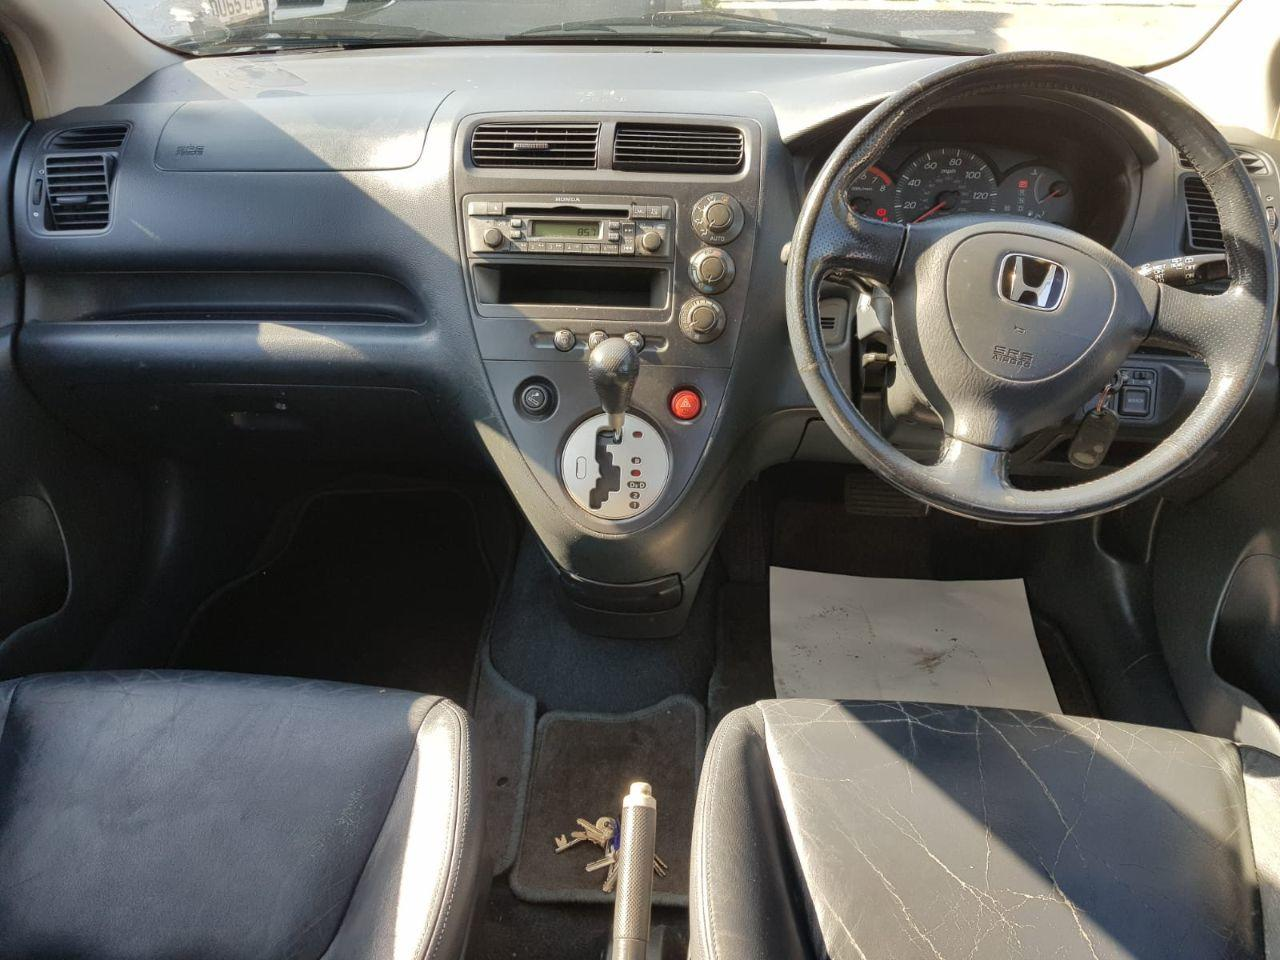 2001 Honda Civic 1.6 i-VTEC SE Executive 5dr Auto